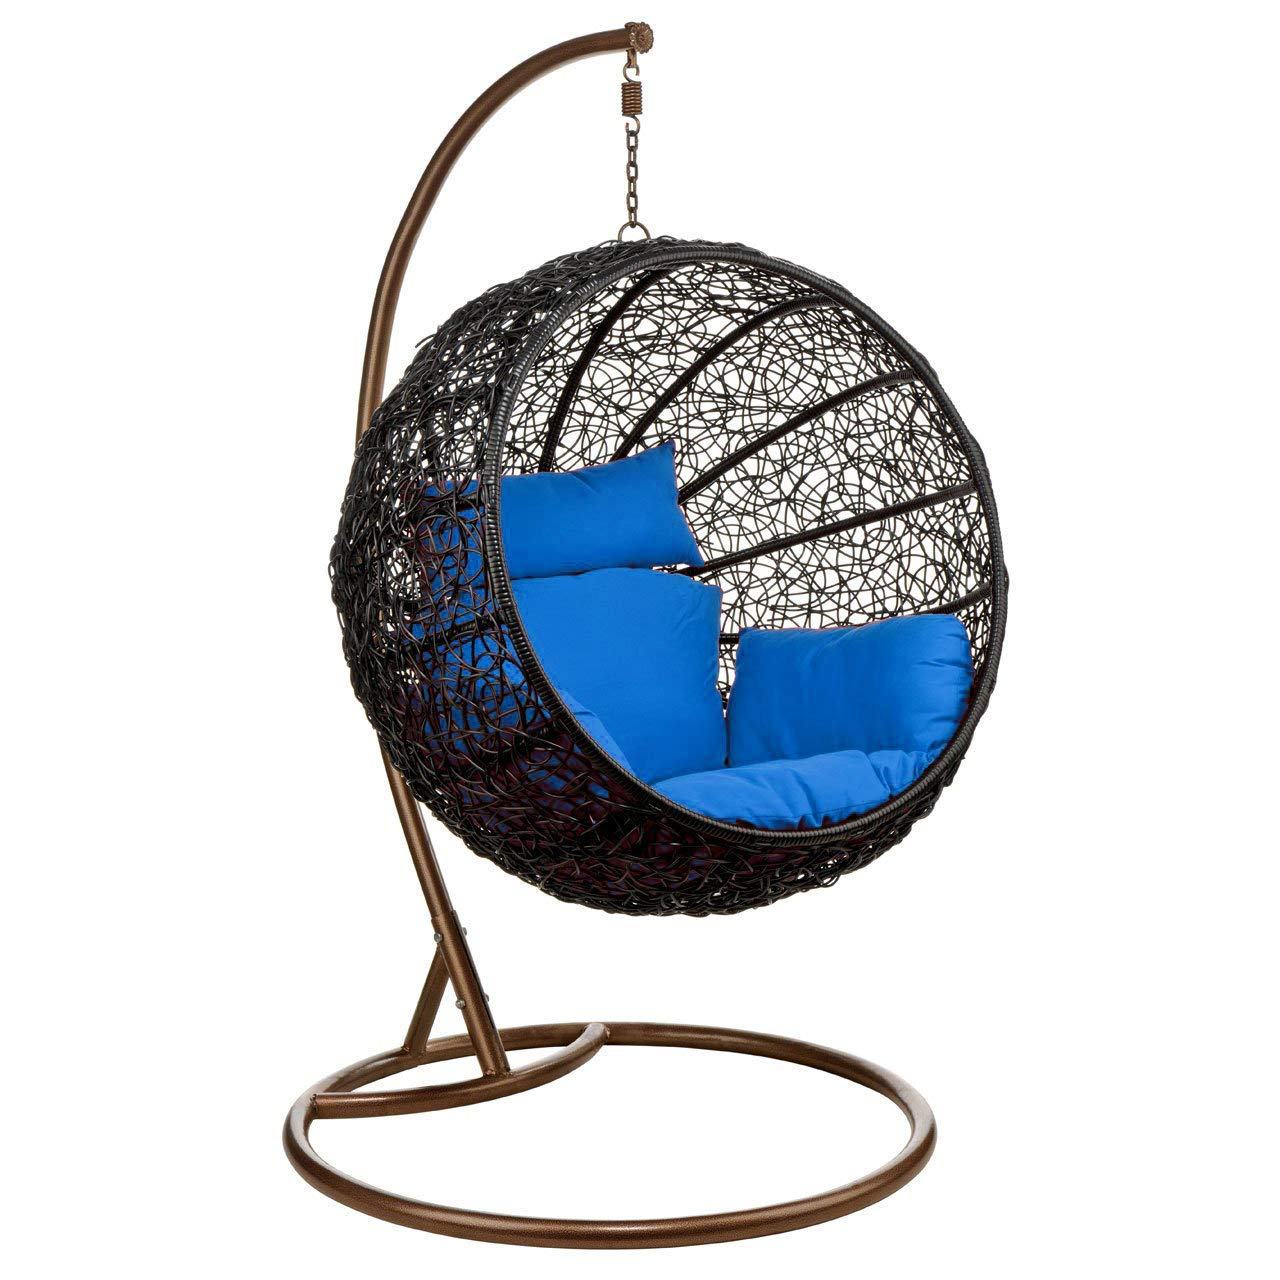 Carry Bird Big Boss Wicker Rattan Hanging Egg Chair Swing For Indoor Outdoor Patio Backyard Stylish Comfortable Relaxing With Cushion And Stand Standard Brown Swing Blue Amazon In Home Kitchen